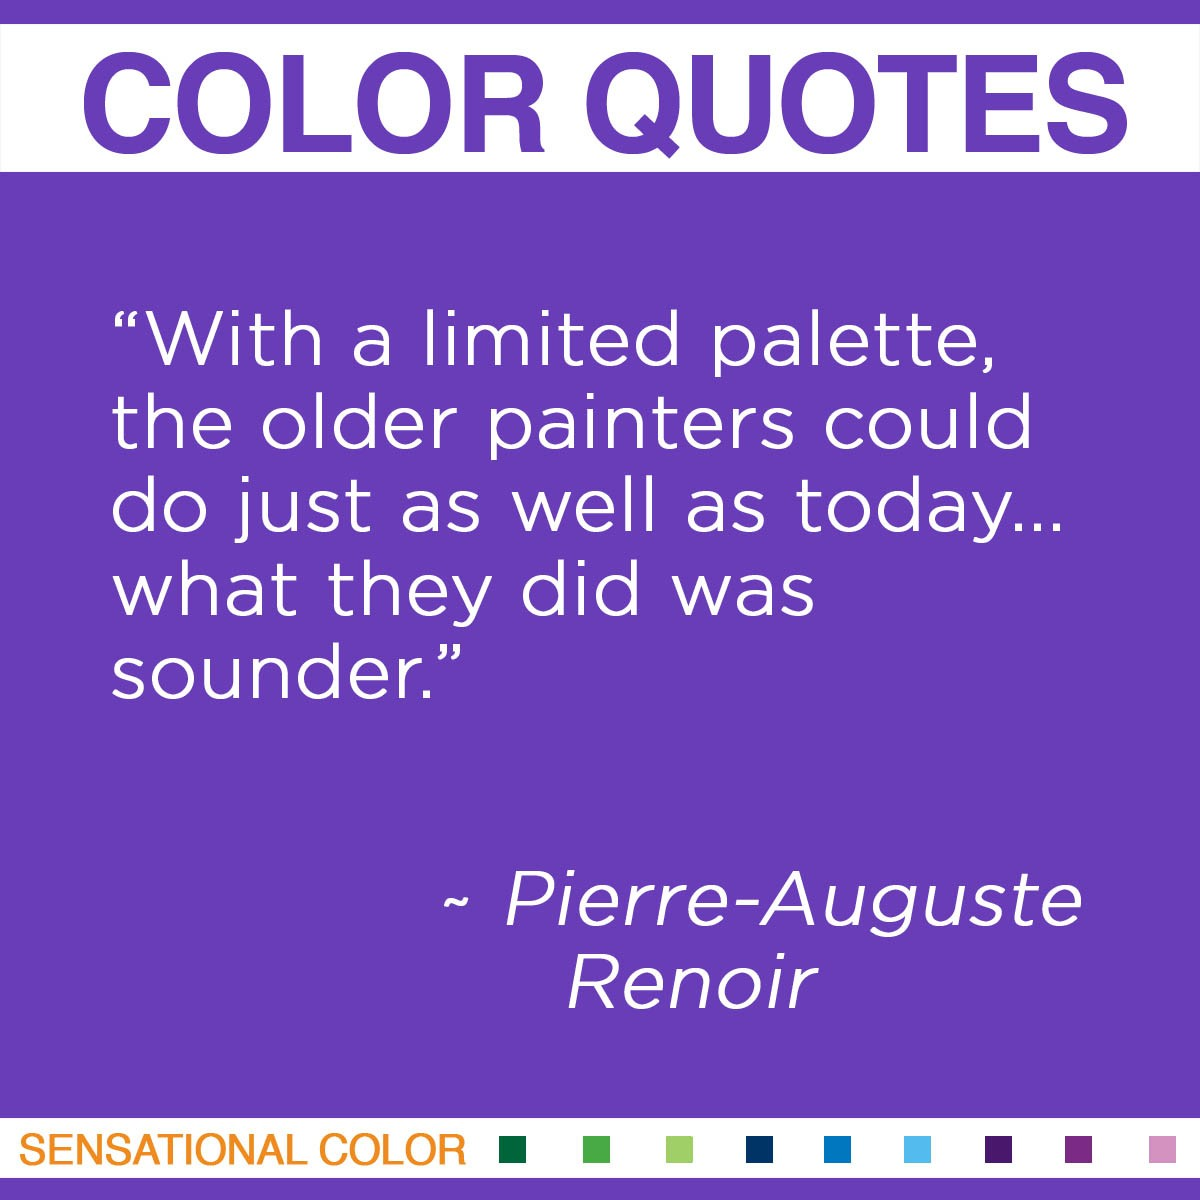 """With a limited palette, the older painters could do just as well as today… what they did was sounder."" - Pierre-Auguste Renoir"